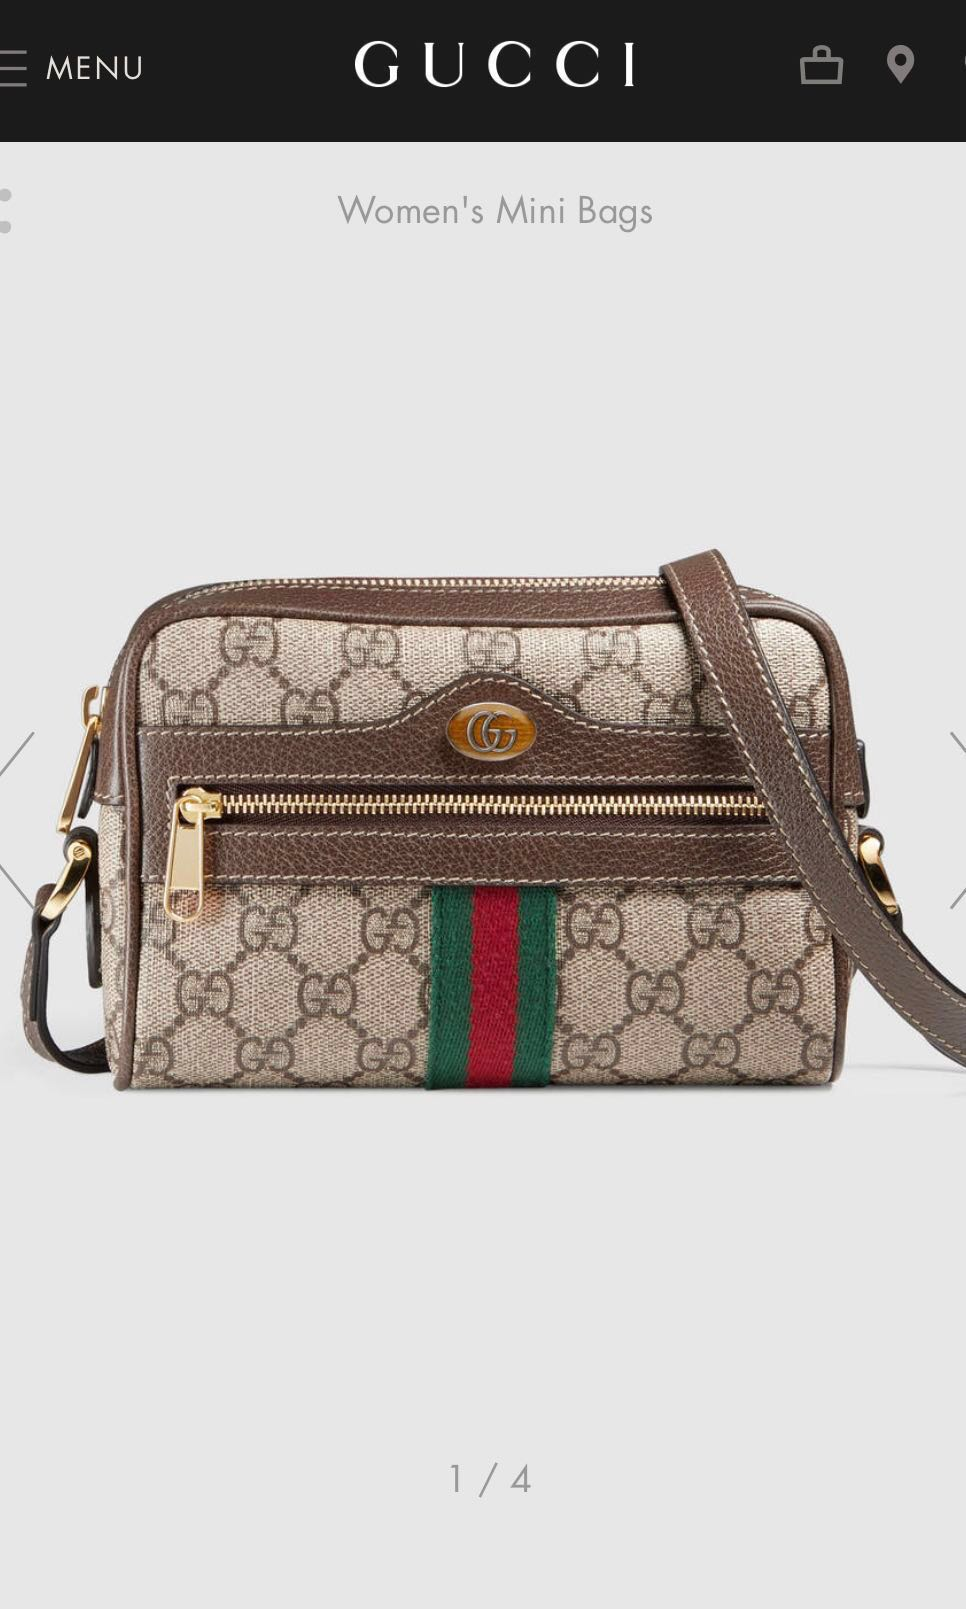 62e800b75c34 Gucci Ophidia GG Supreme Mini Bag, Luxury, Bags & Wallets, Handbags ...